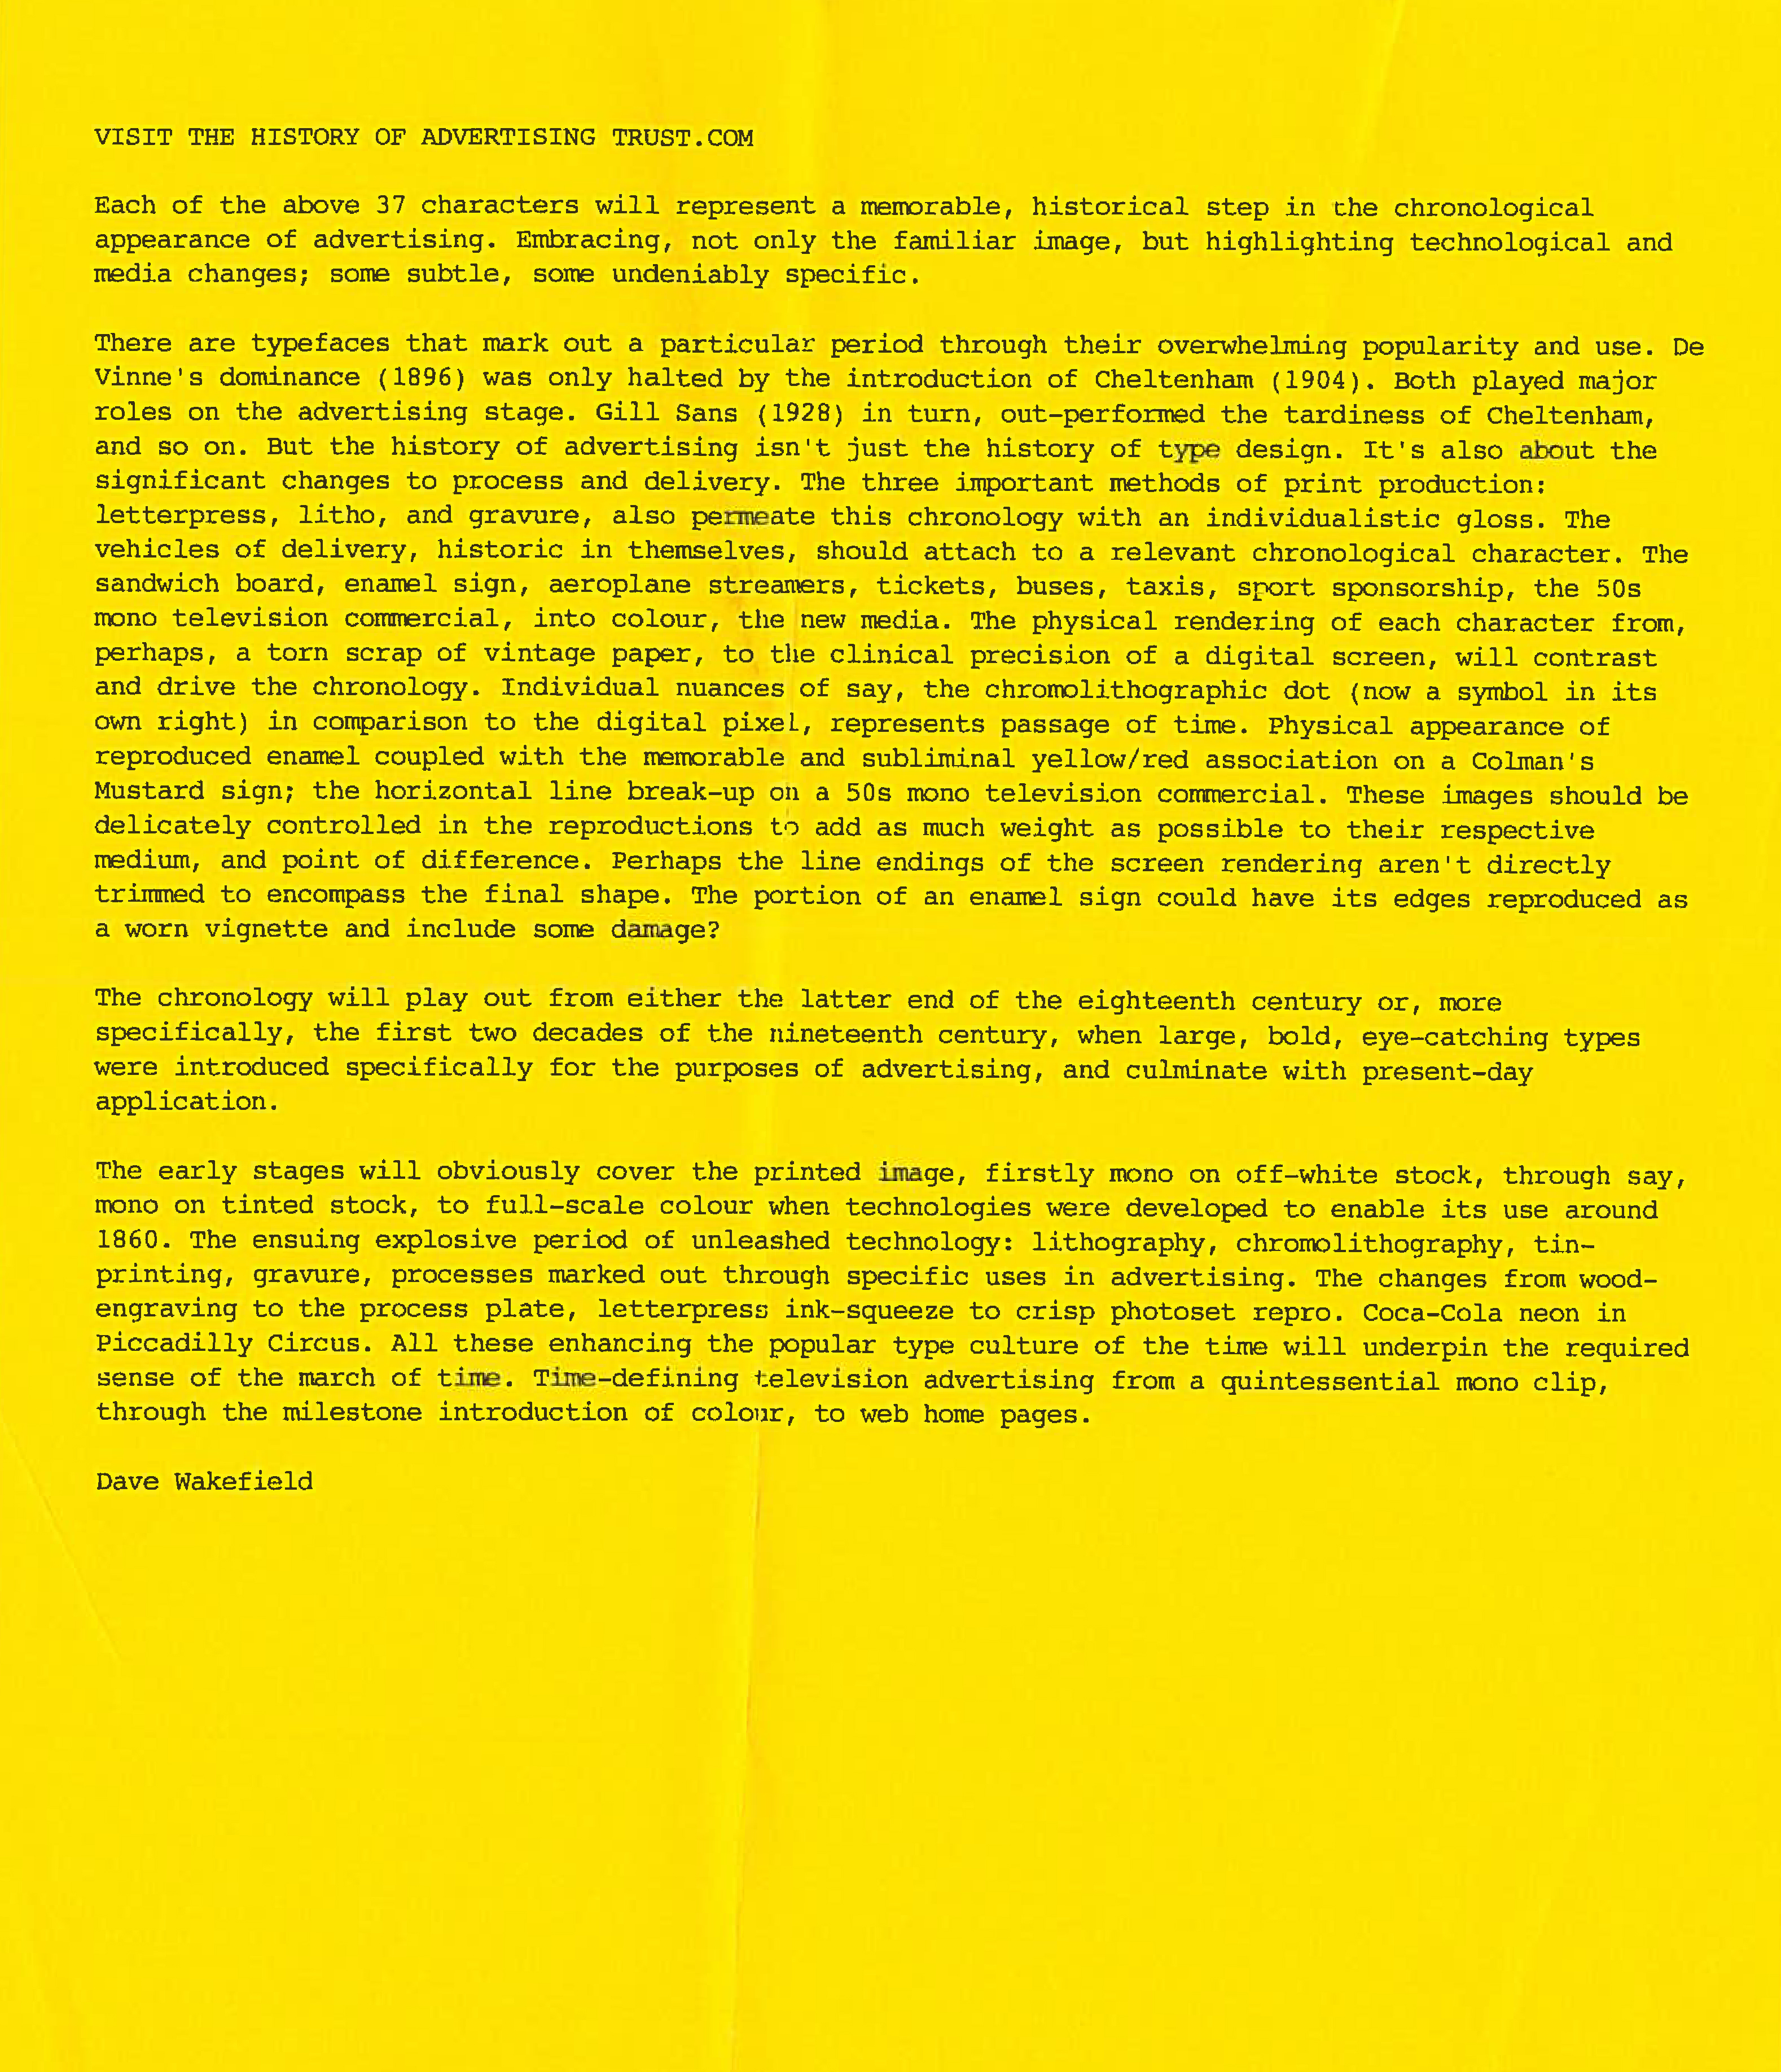 Dave Wakefield letter-01